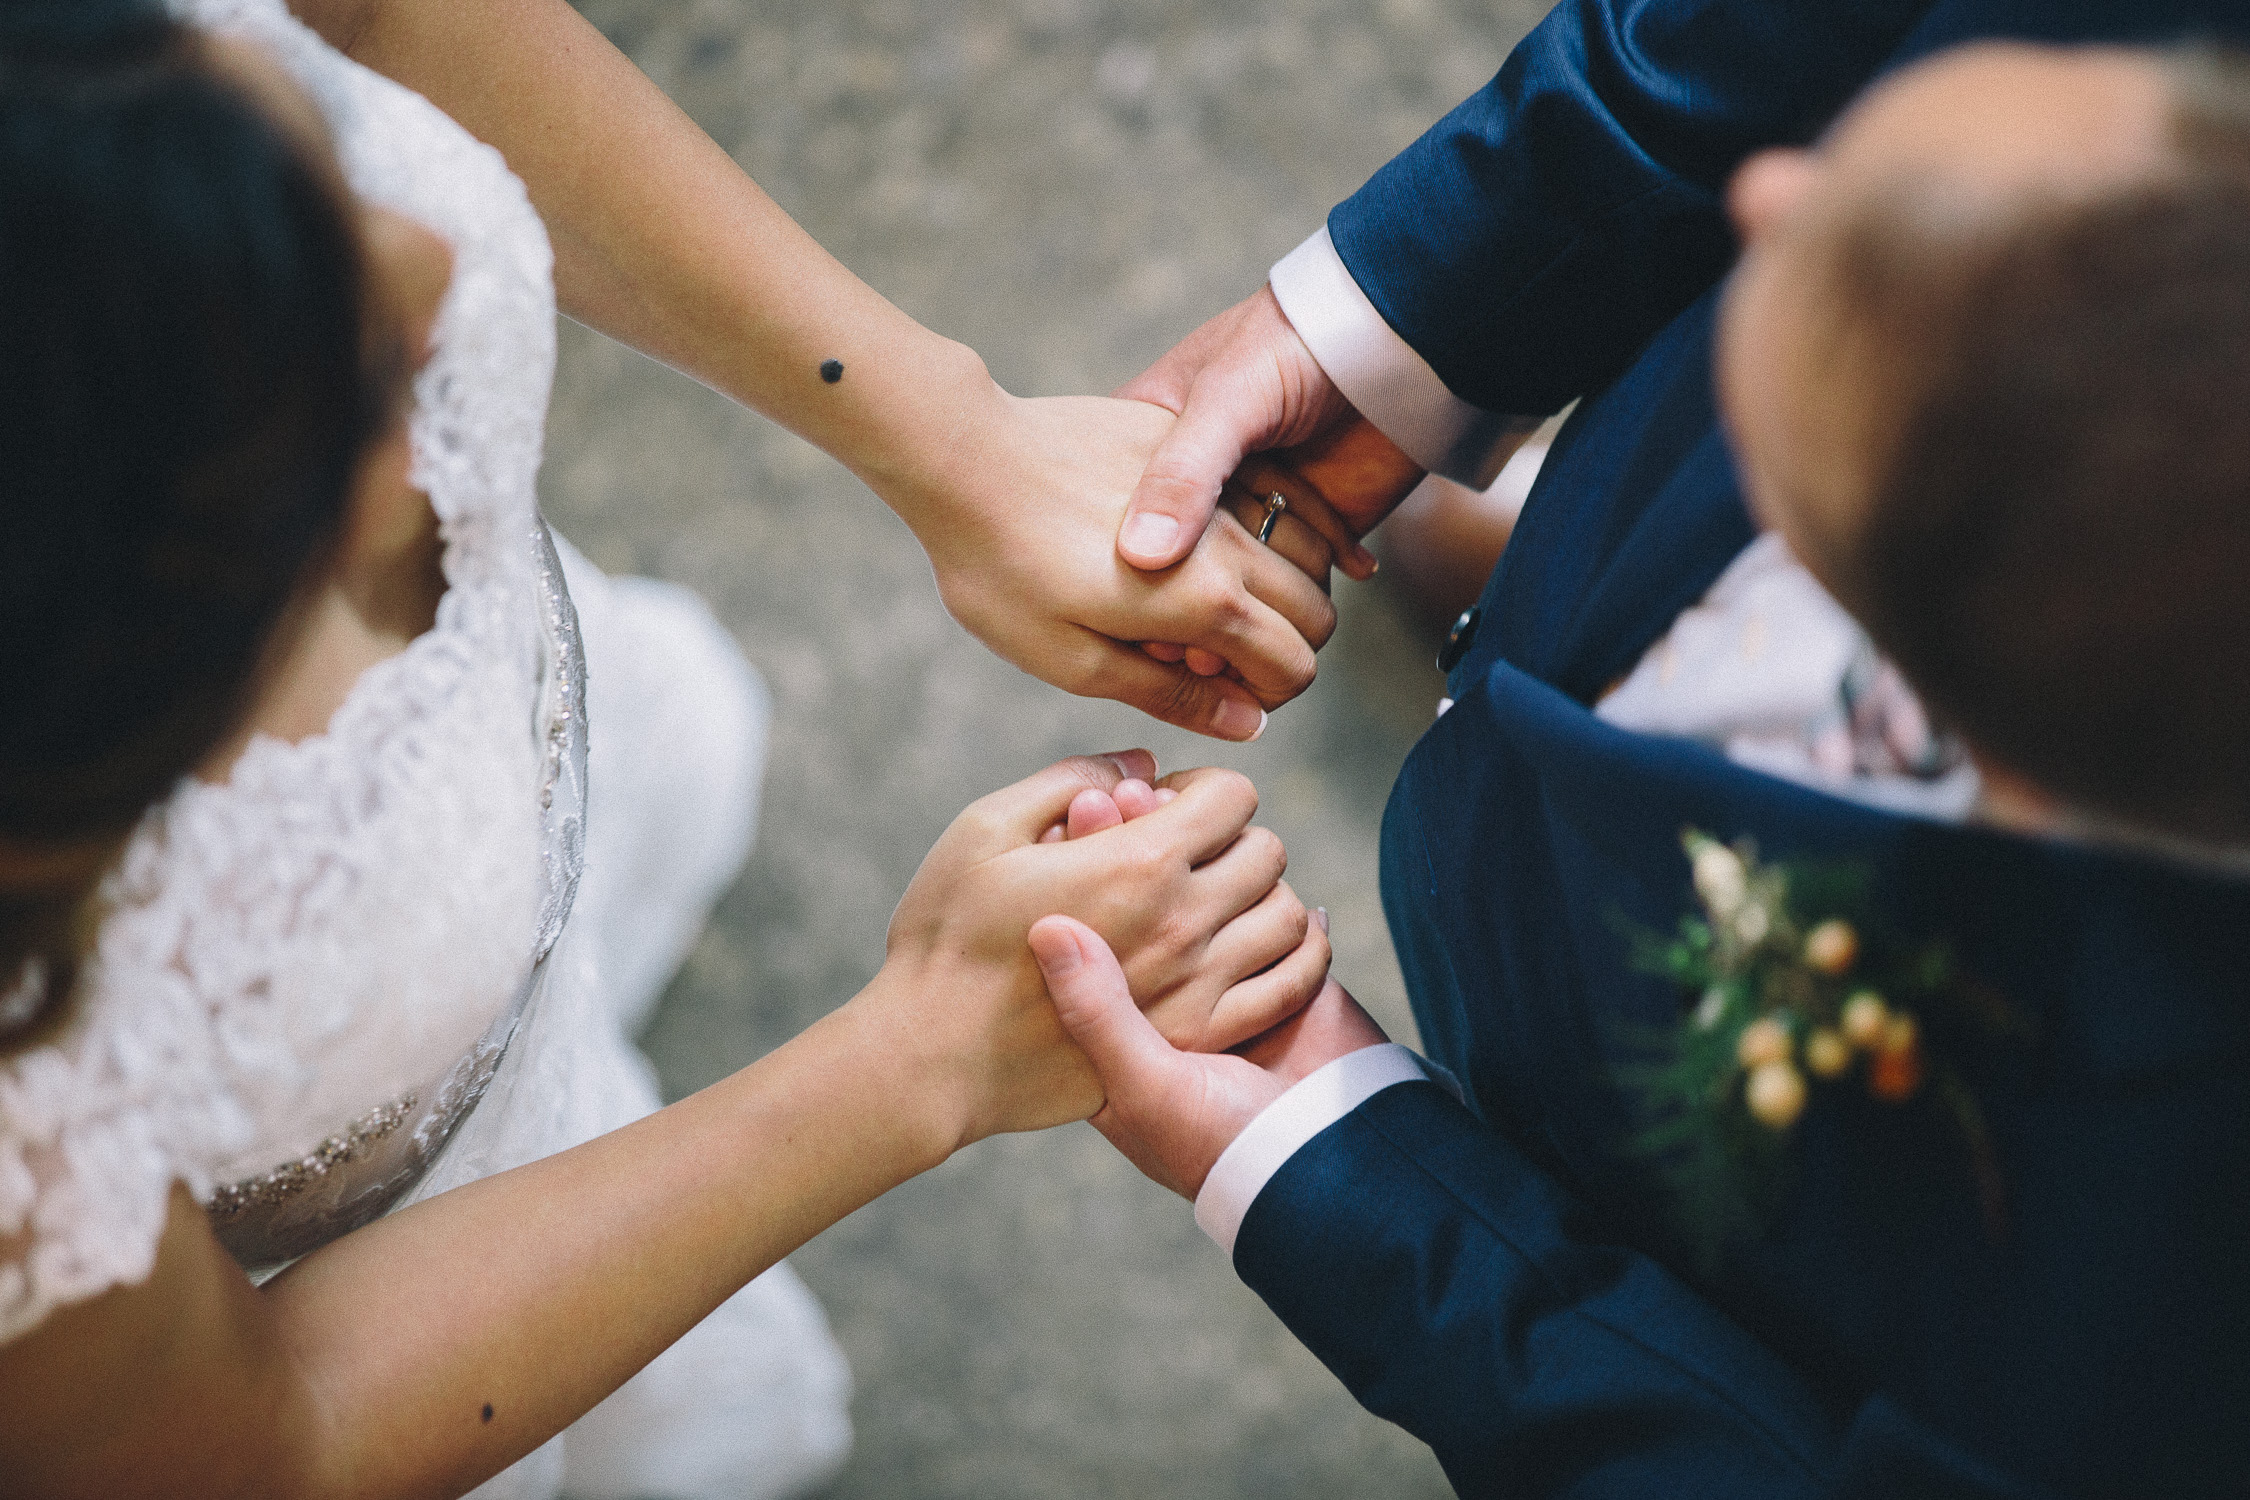 Interracial bride and groom hold hands during their non-religious wedding ceremony at Hotel Ocho